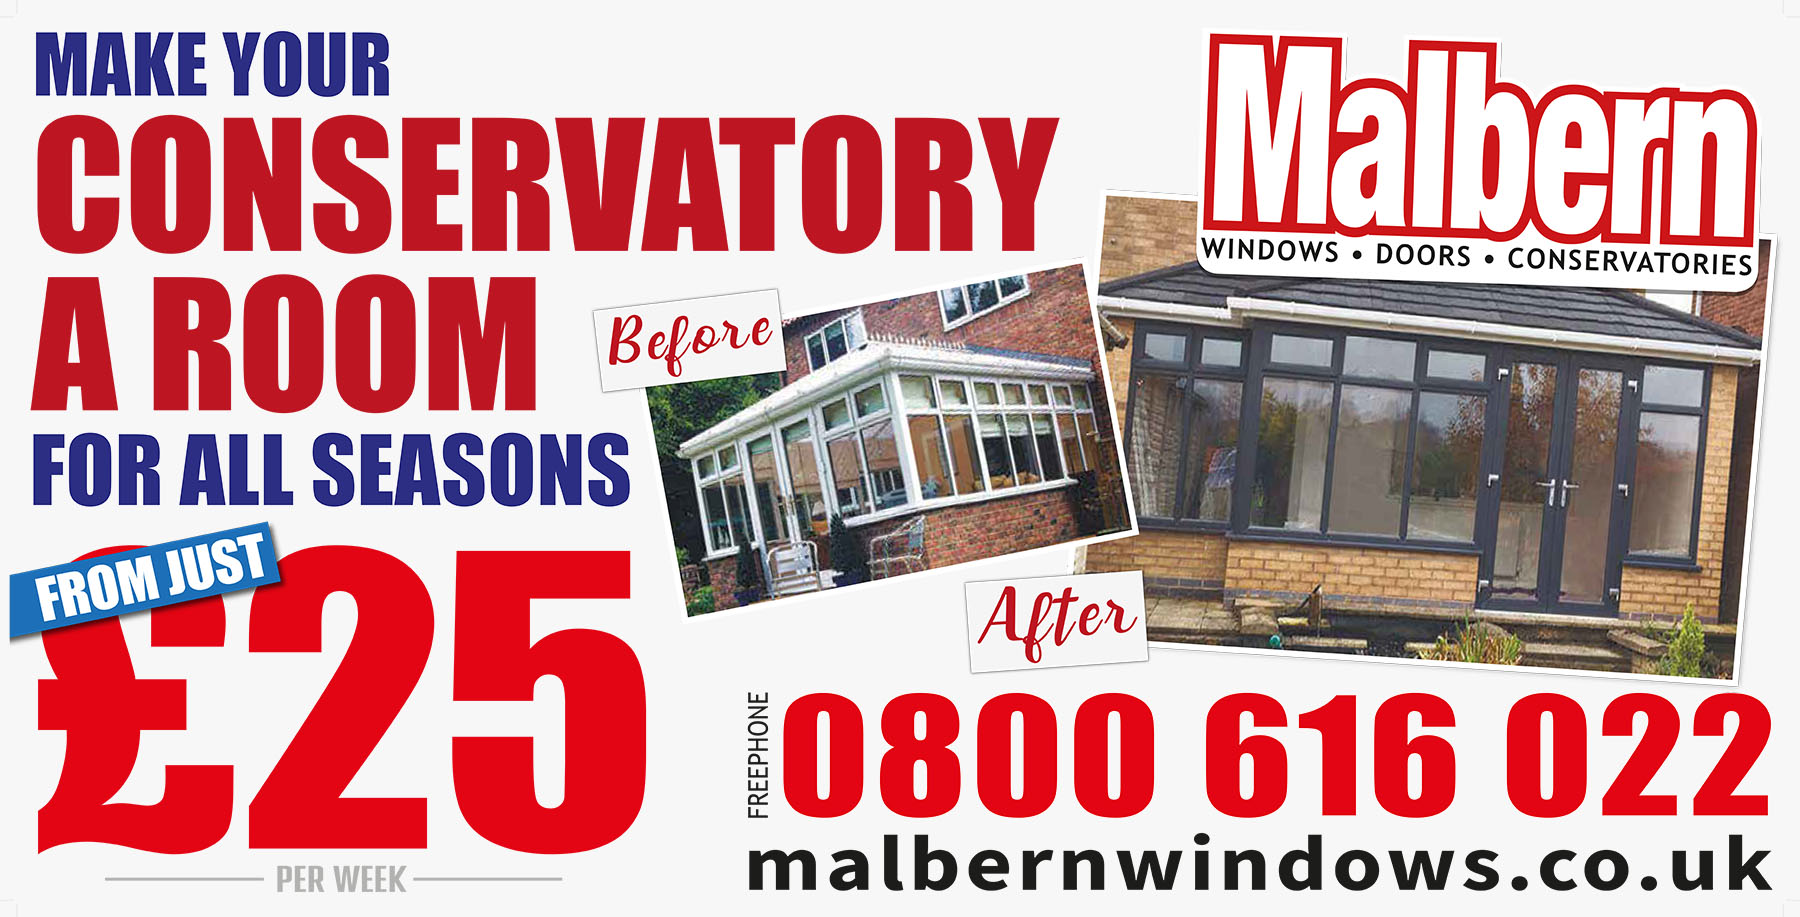 Malbern Windows Conservatory Offers